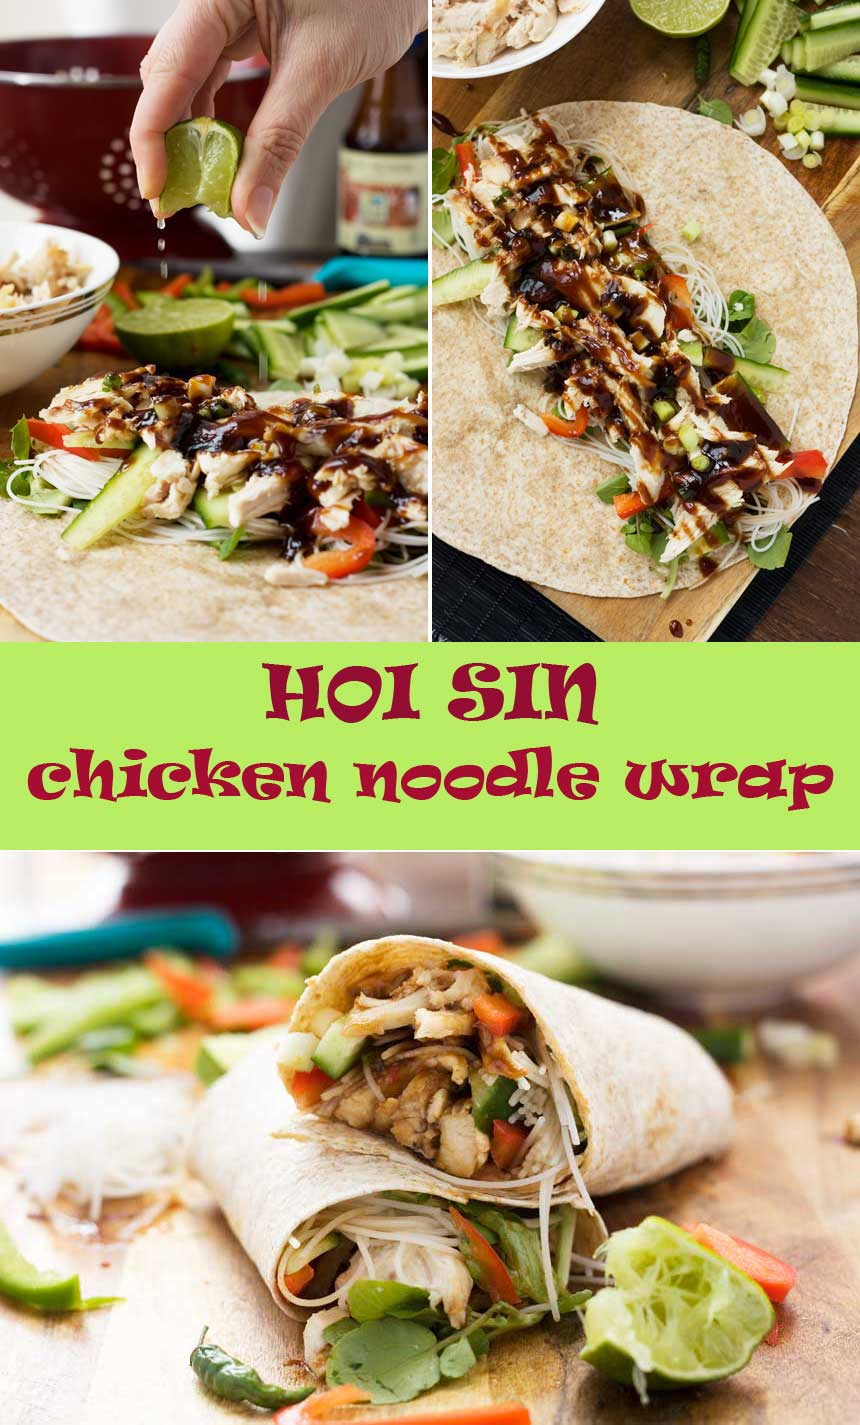 Quick hoi sin chicken noodle wrap - don't get stuck over what to do with your leftover rotisserie chicken ever again!